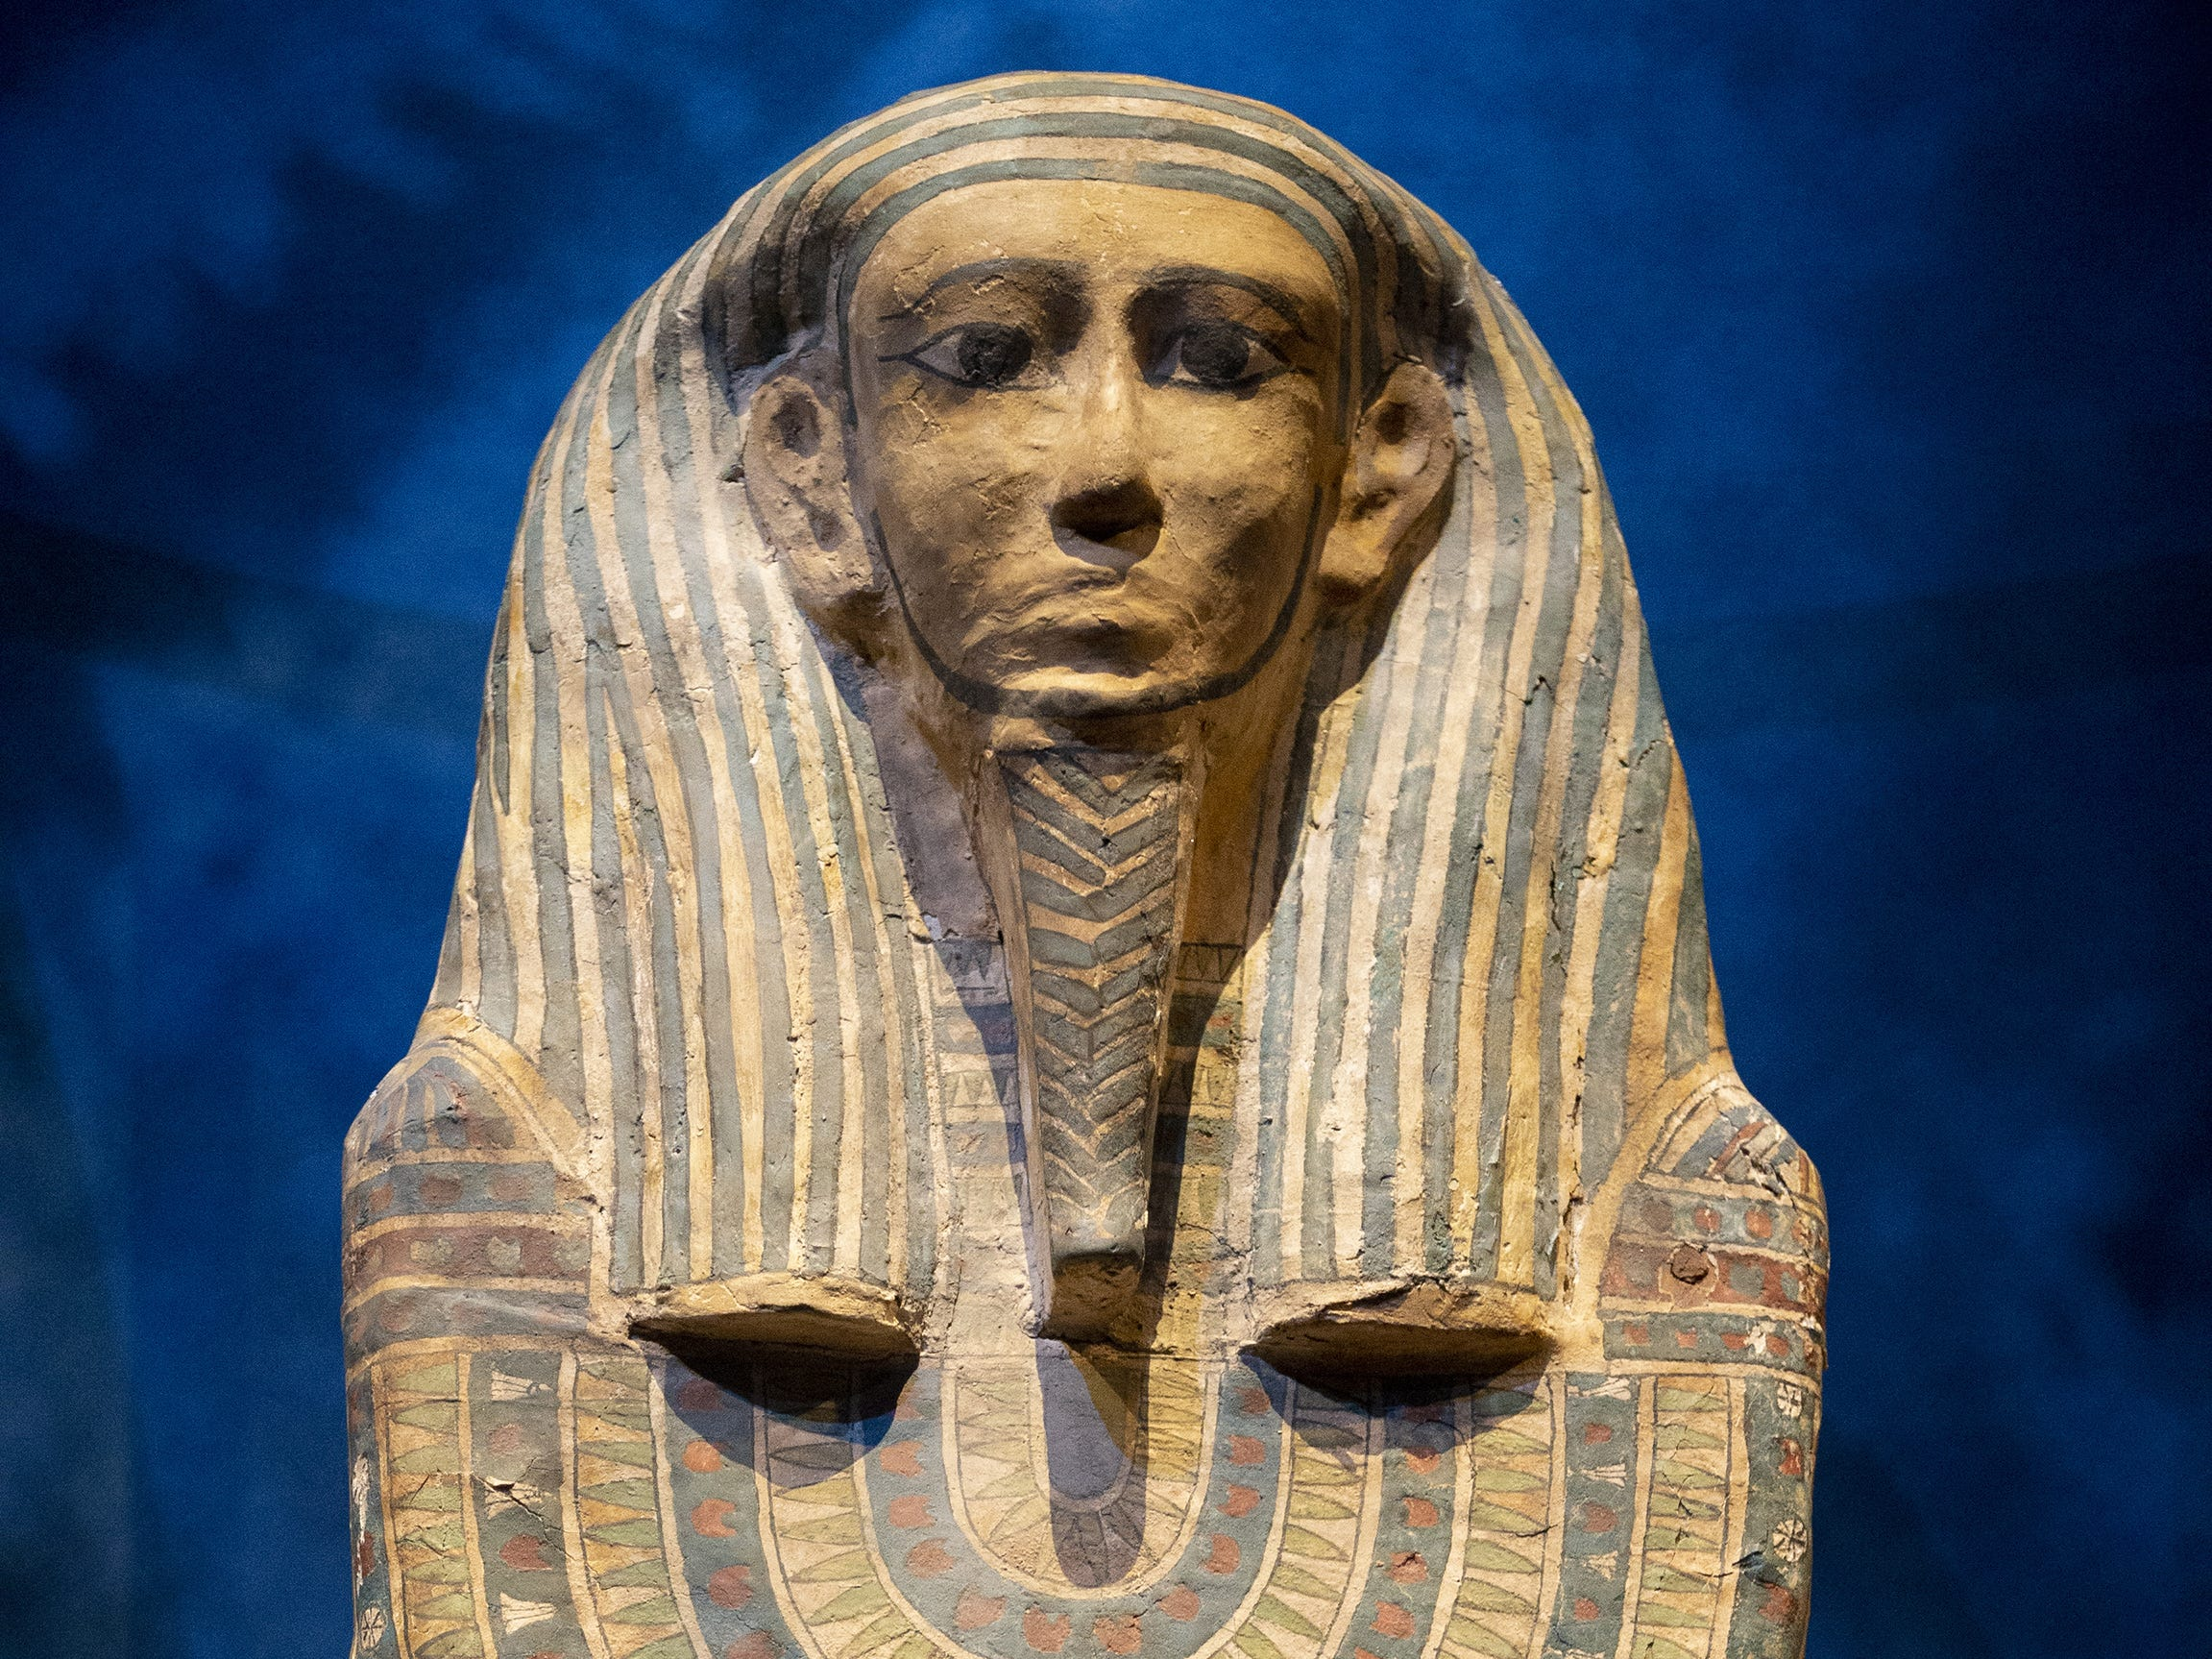 Sarcophagus of a Woman of High Status is displayed at the Mummies of the World: The Exhibition at the Arizona Science Center. The exhibit includes mummies from Egypt, Europe and the U.S. and is open to the public from Feb. 10 through Sept. 2, 2019.